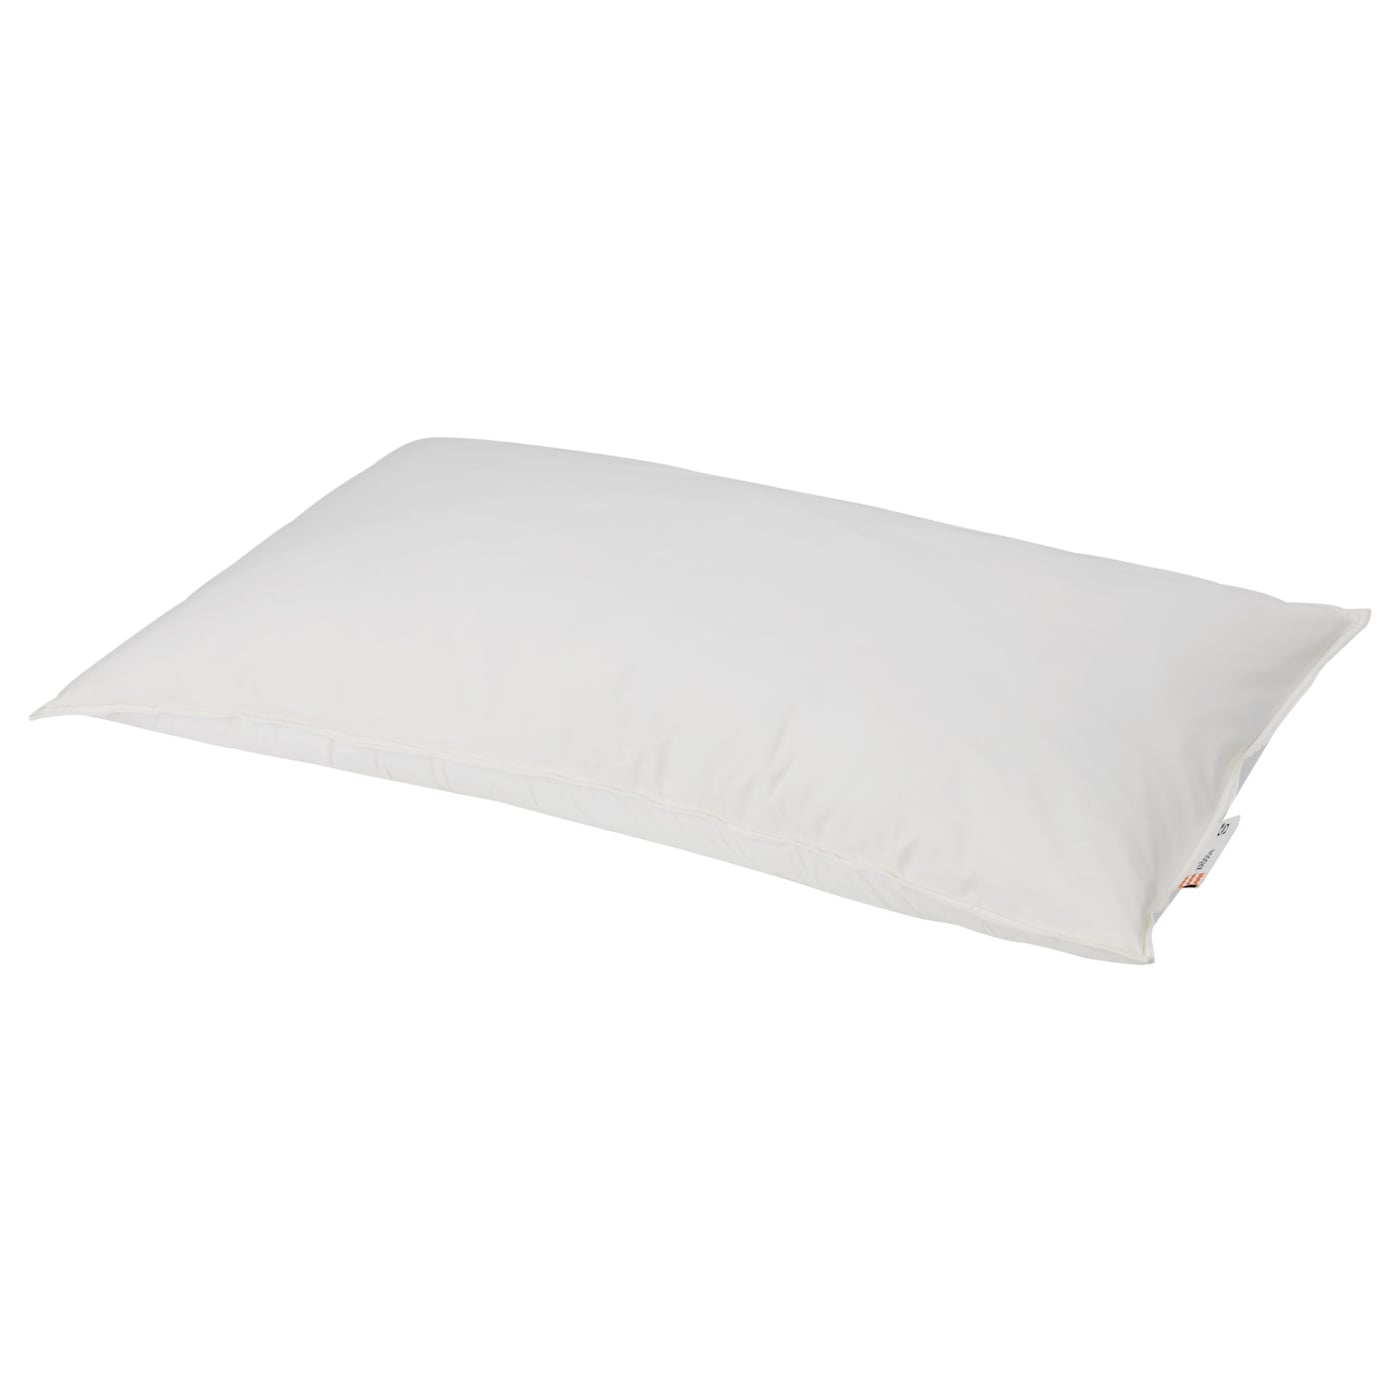 IKEA KRÖSON pillow, softer